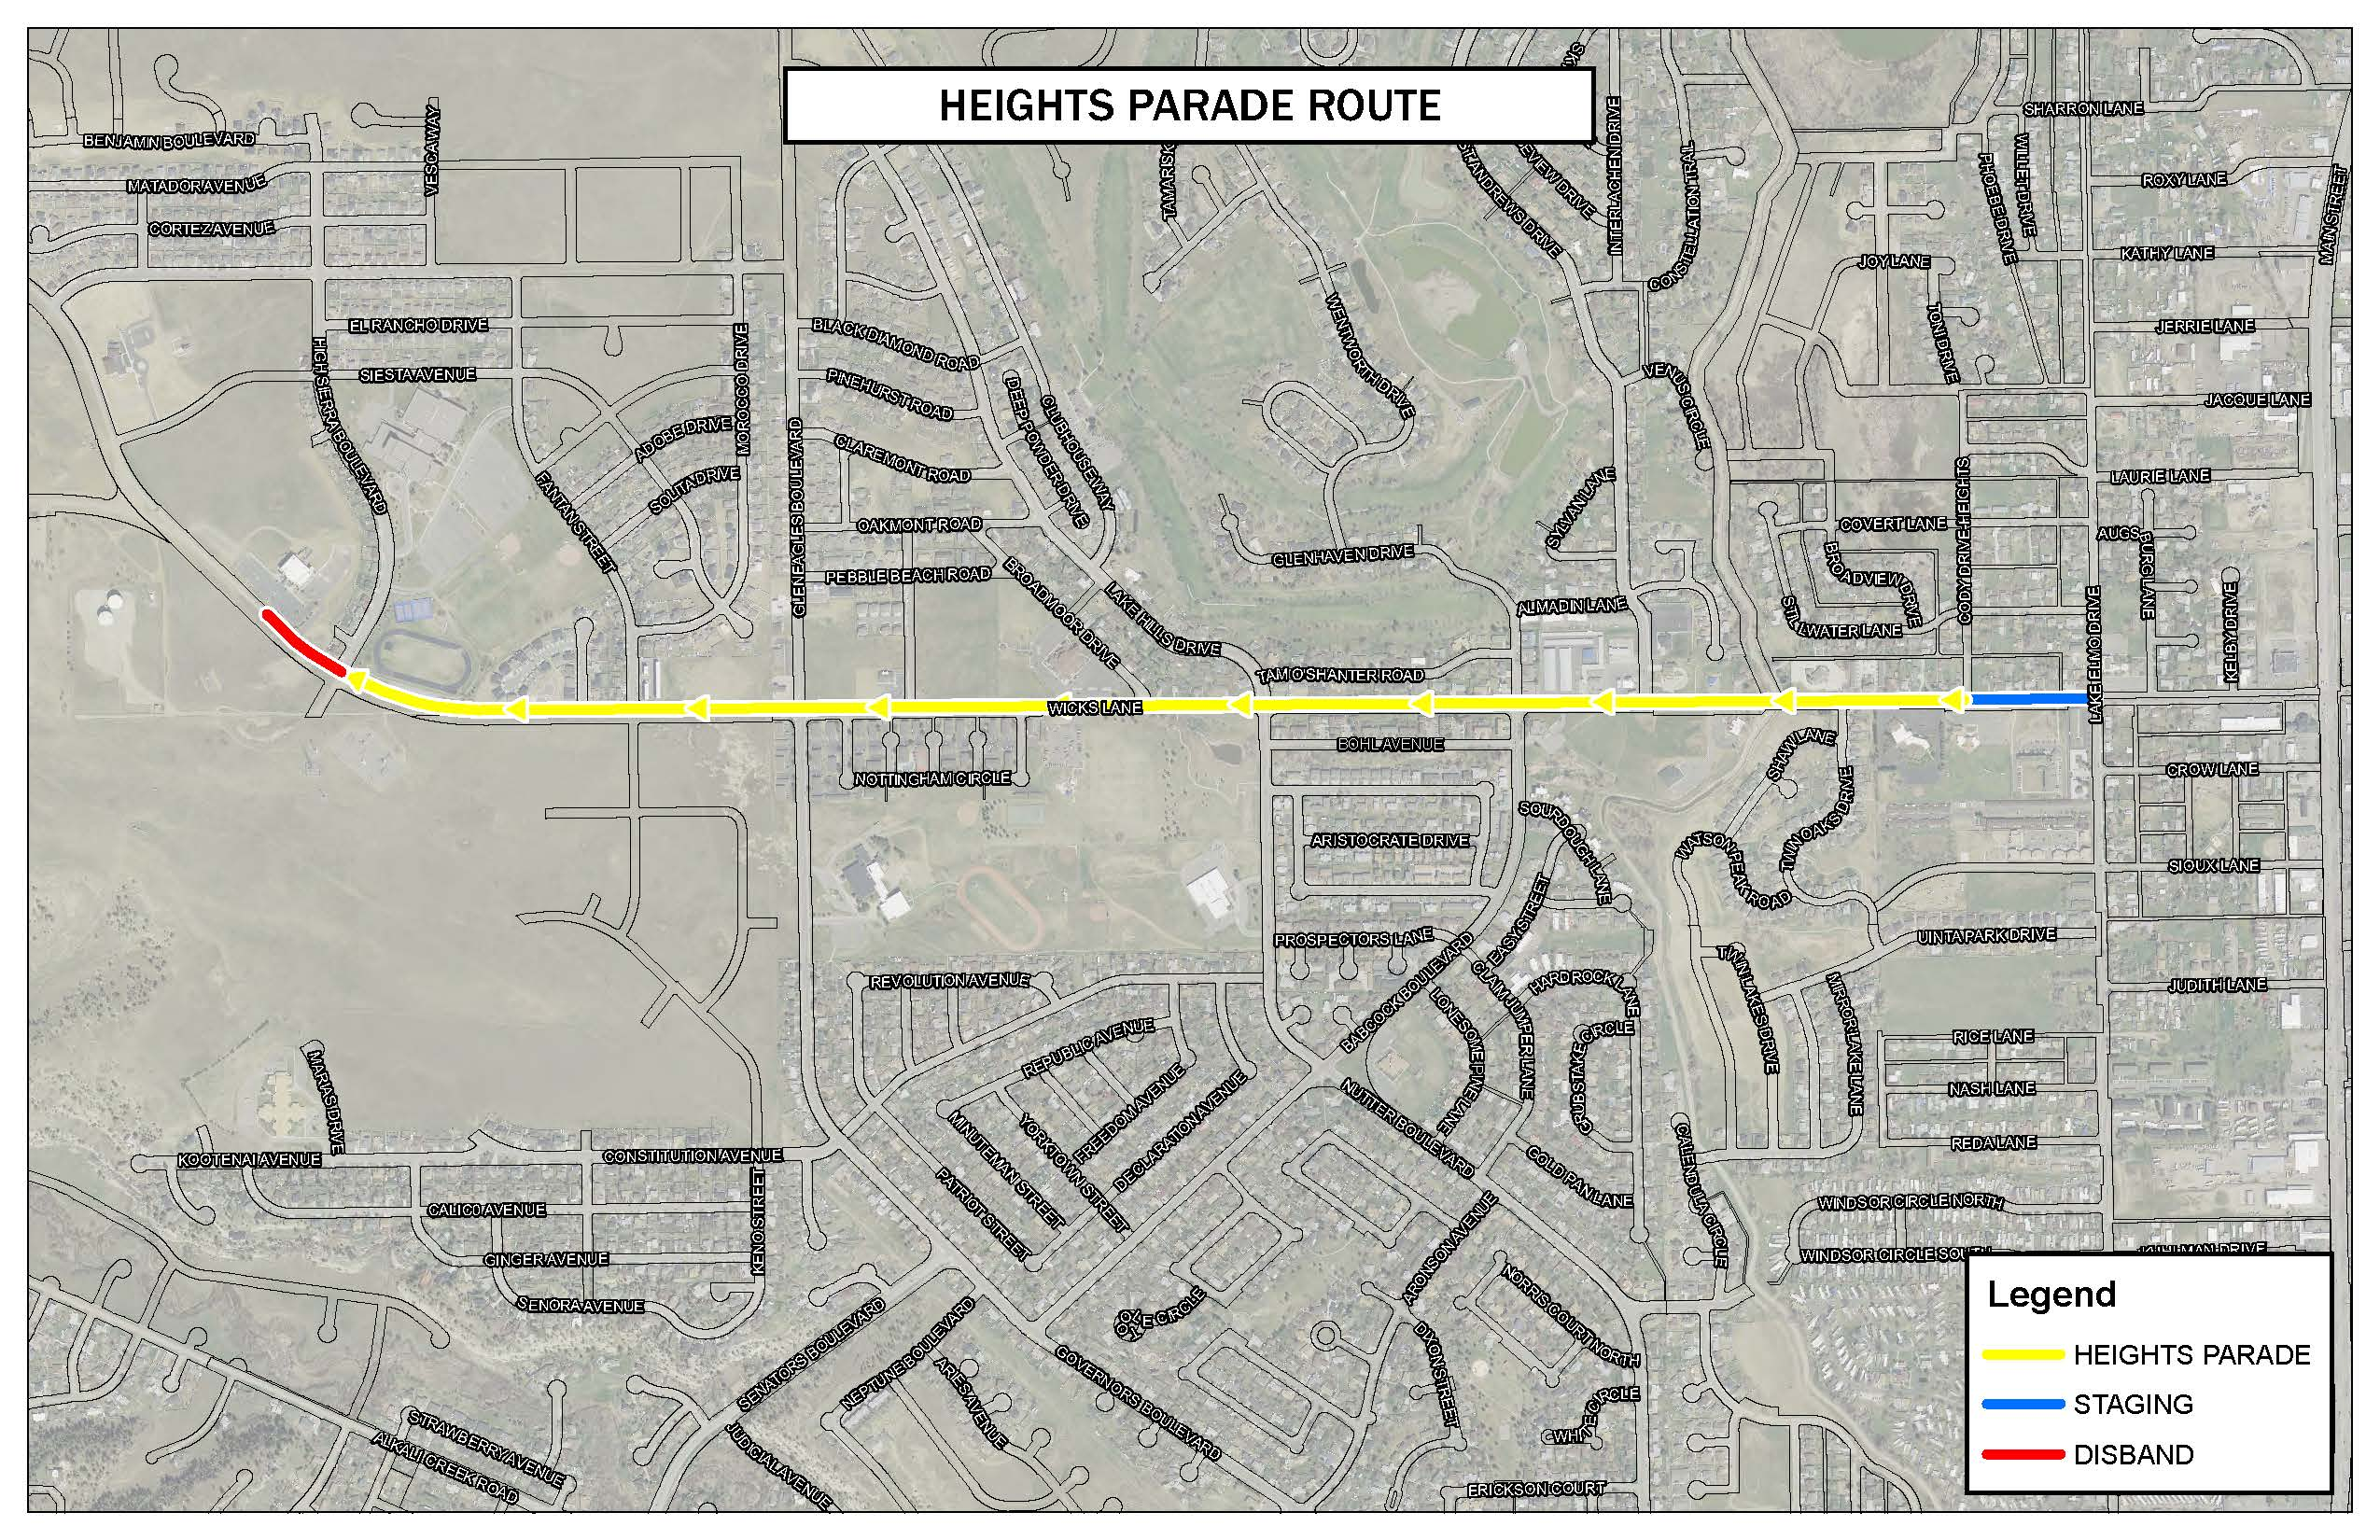 HEIGHTS PARADE ROUTE